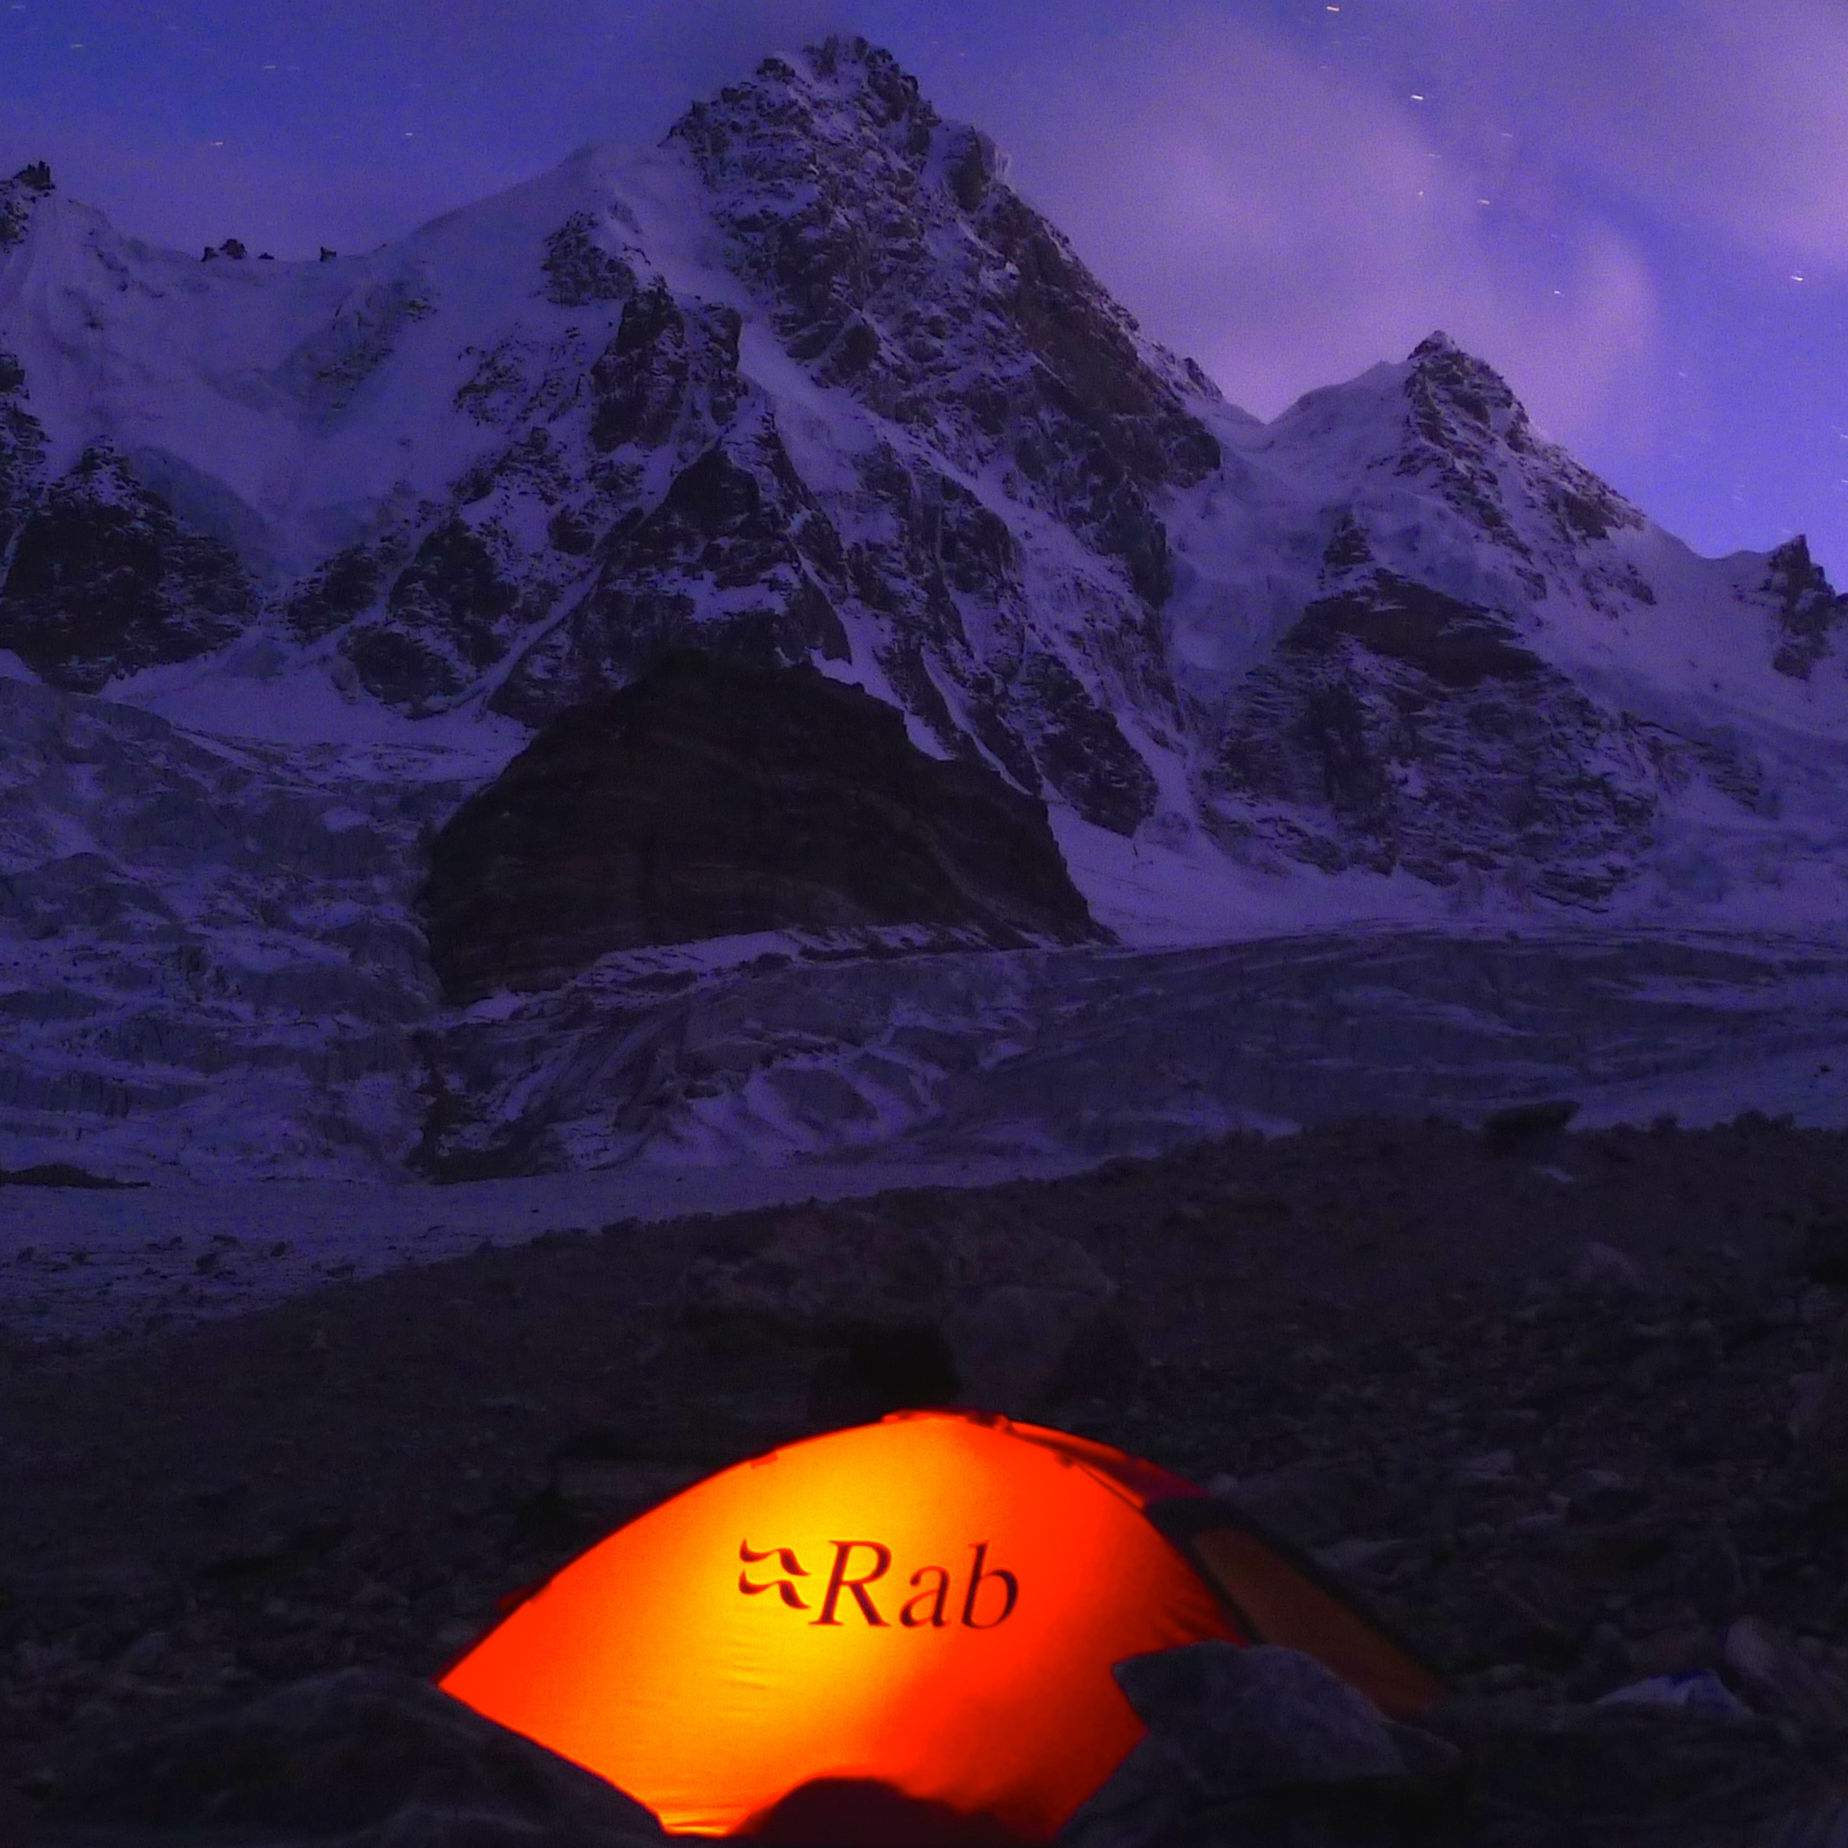 Raja Peak Camping opposite N face Indian Himalaya.jpg